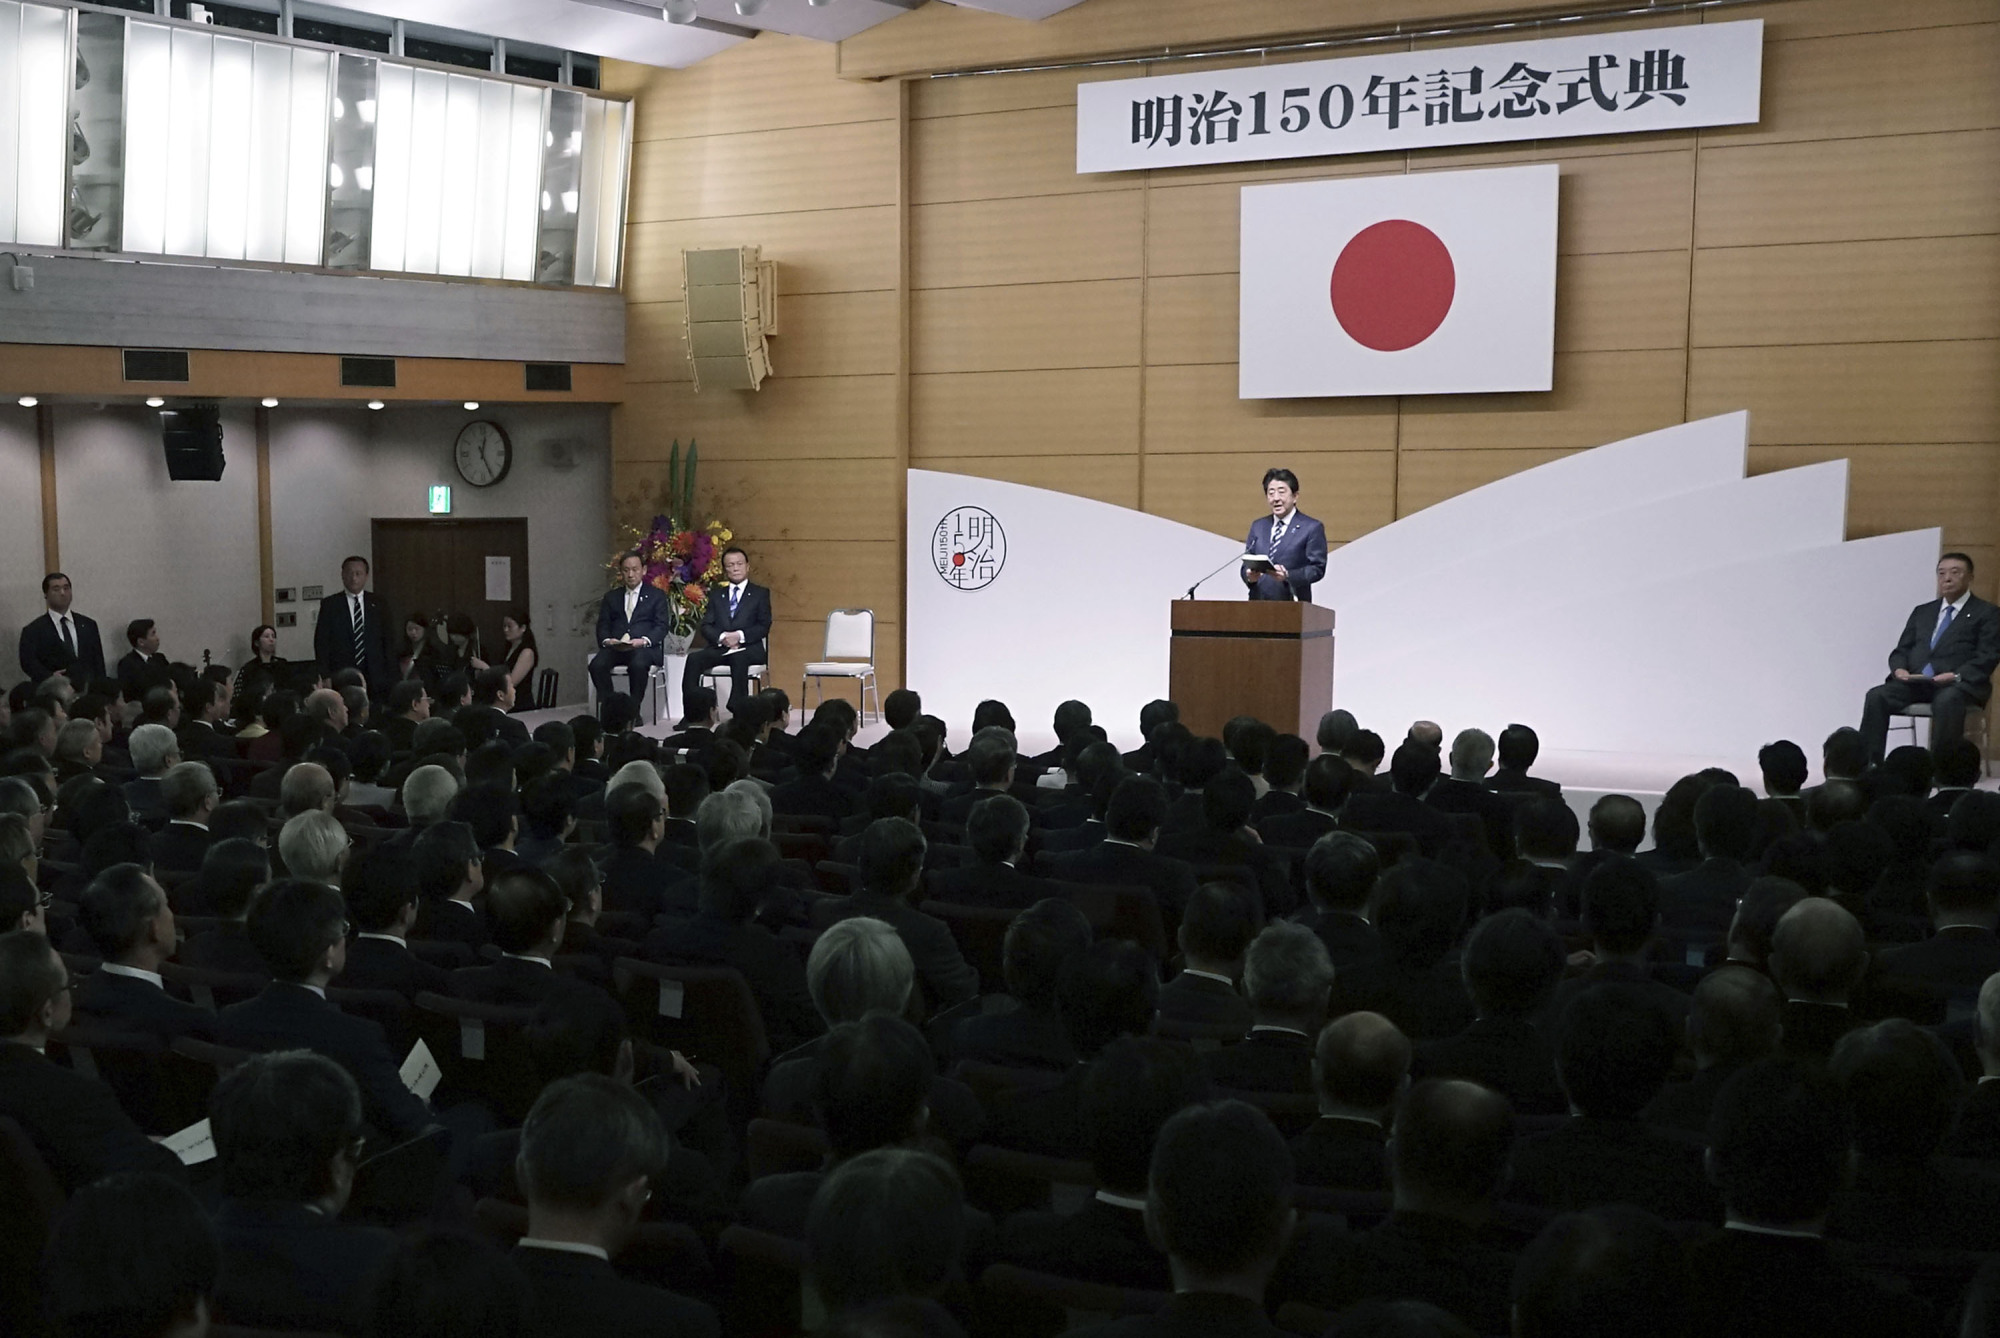 Prime Minister Shinzo Abe gives a speech on Oct. 23 in Tokyo at a ceremony marking the 150th anniversary of the era of Emperor Meiji, under whose rein Japan's modernization started. | AP